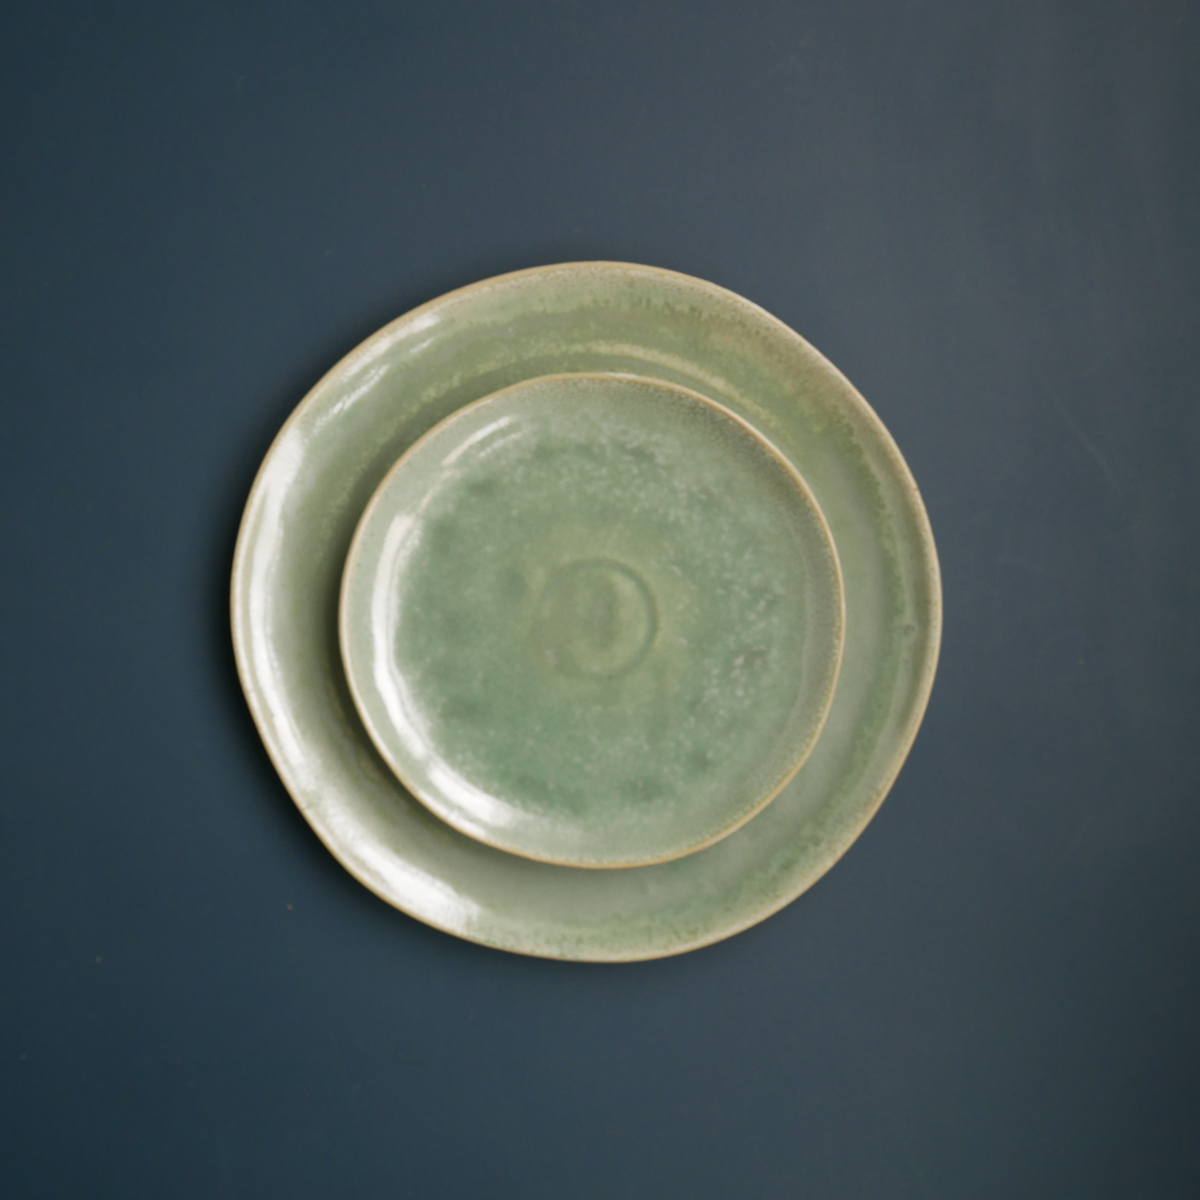 green-glazed-plate-&-side-plate-stacked-blue-background